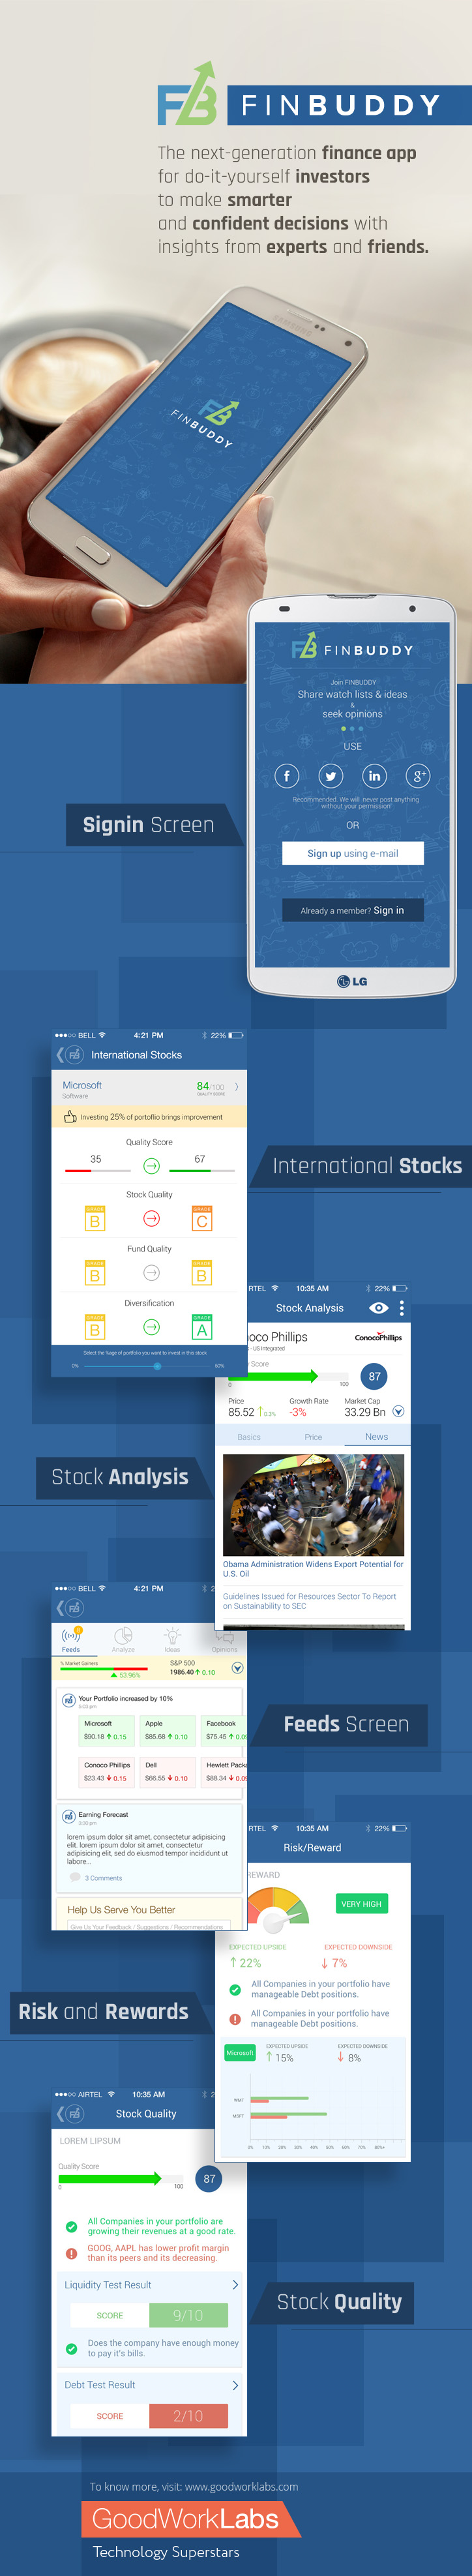 banking app developed by goodworklabs for FinBuddy